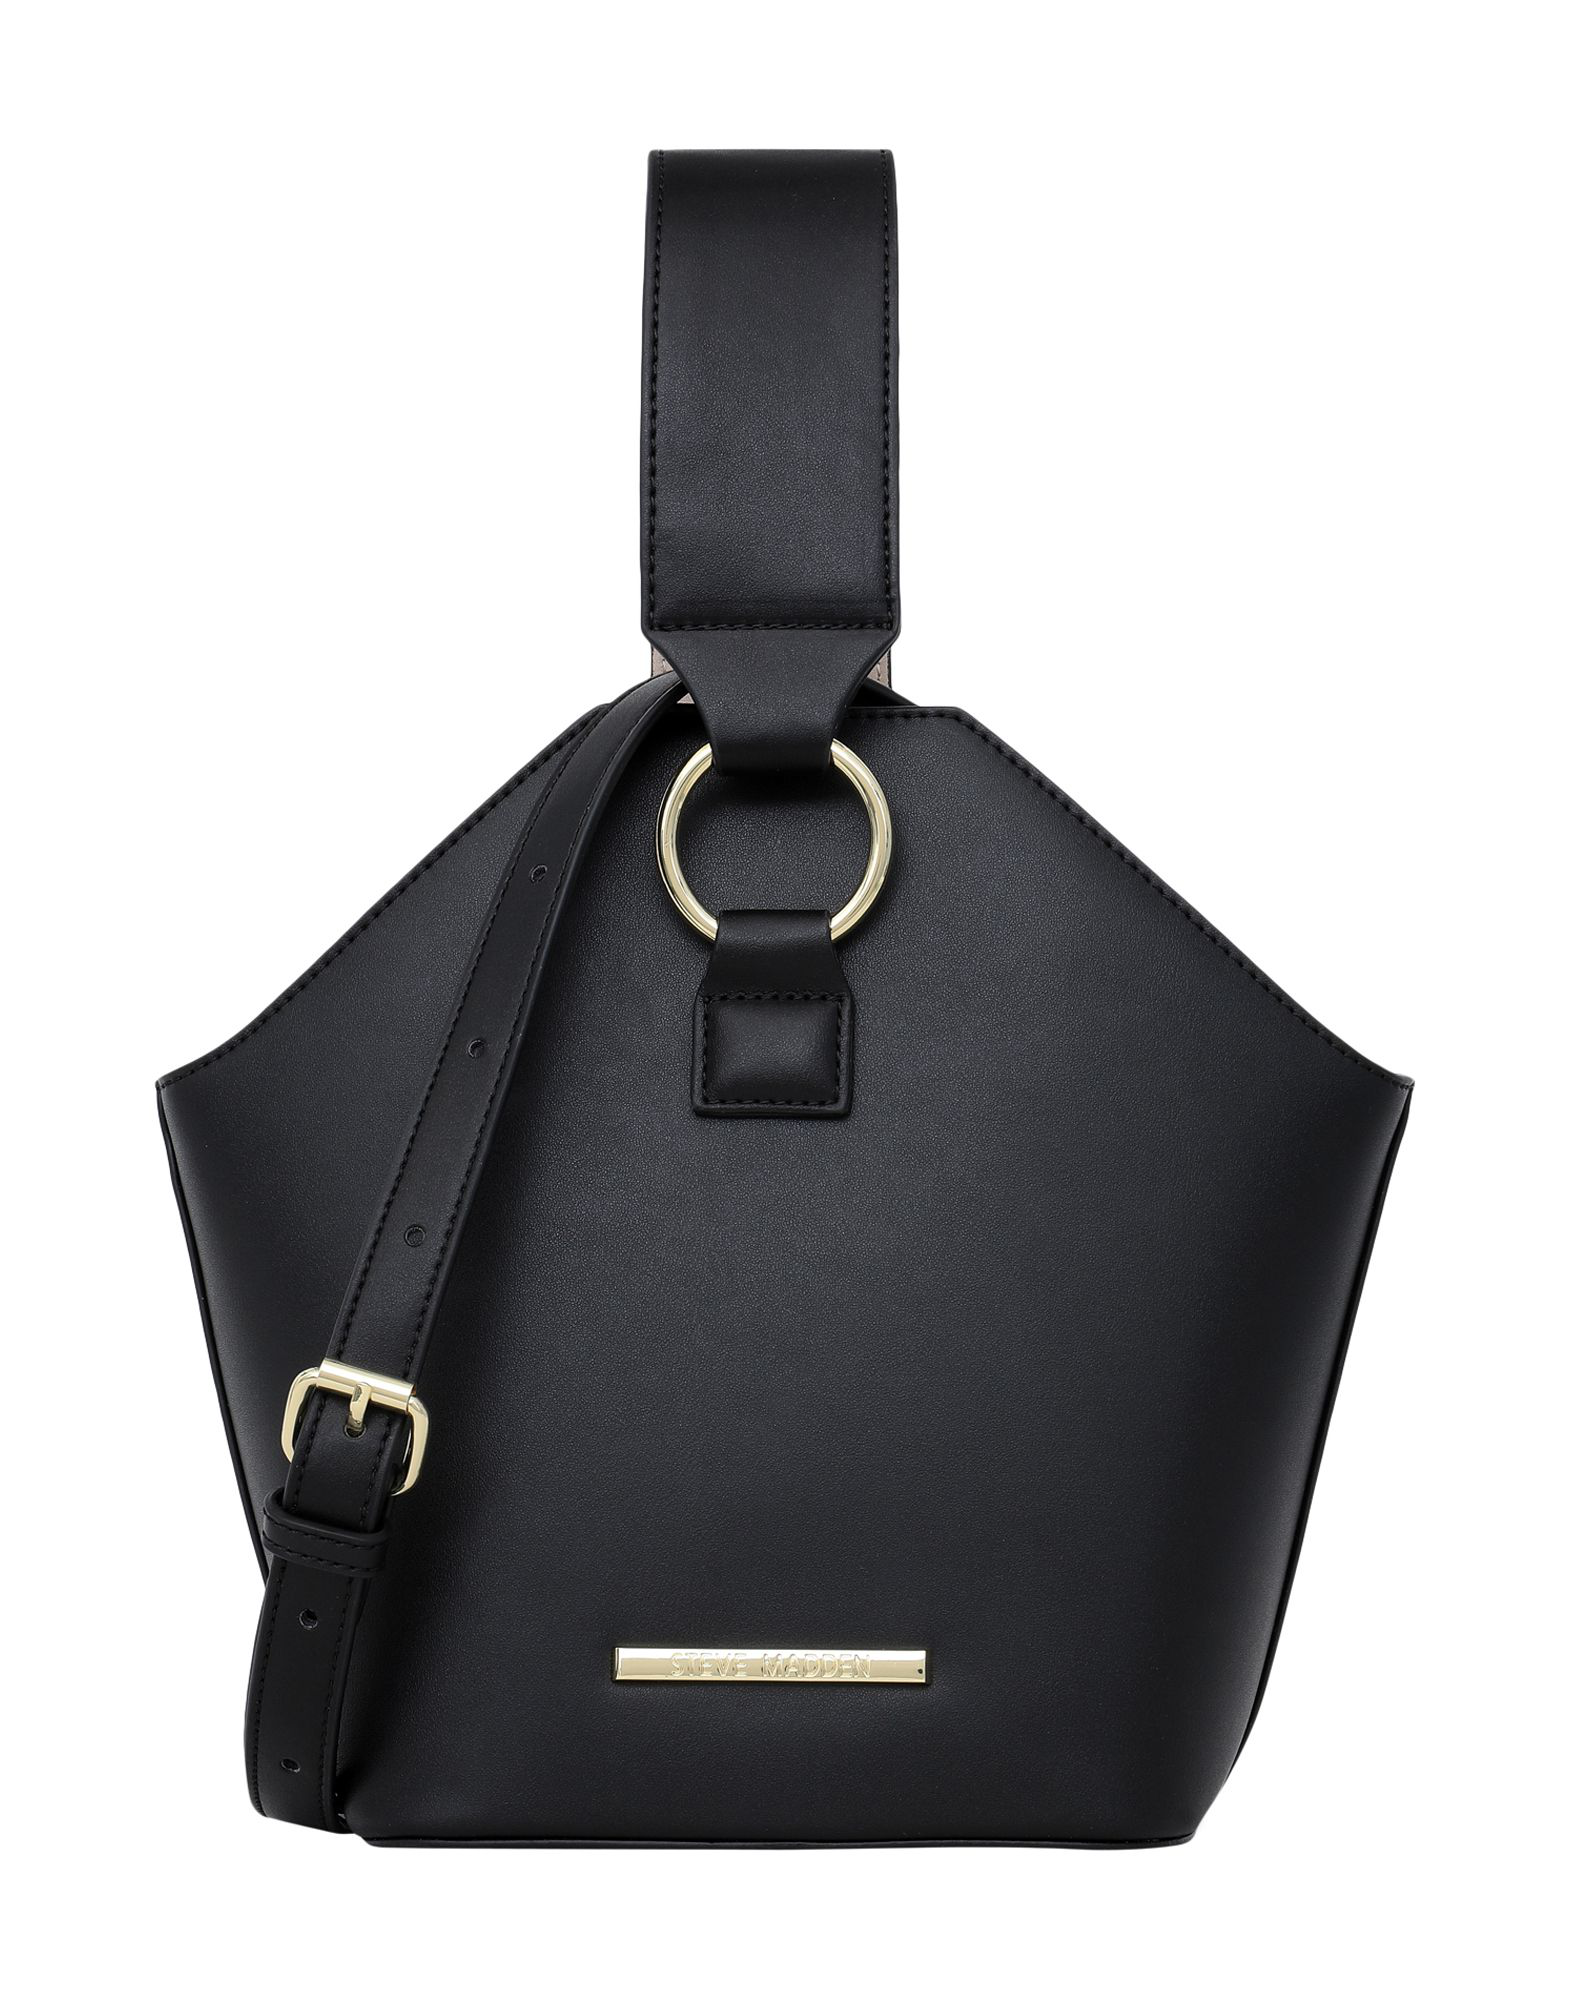 Steve Madden Handbag In Black Modesens